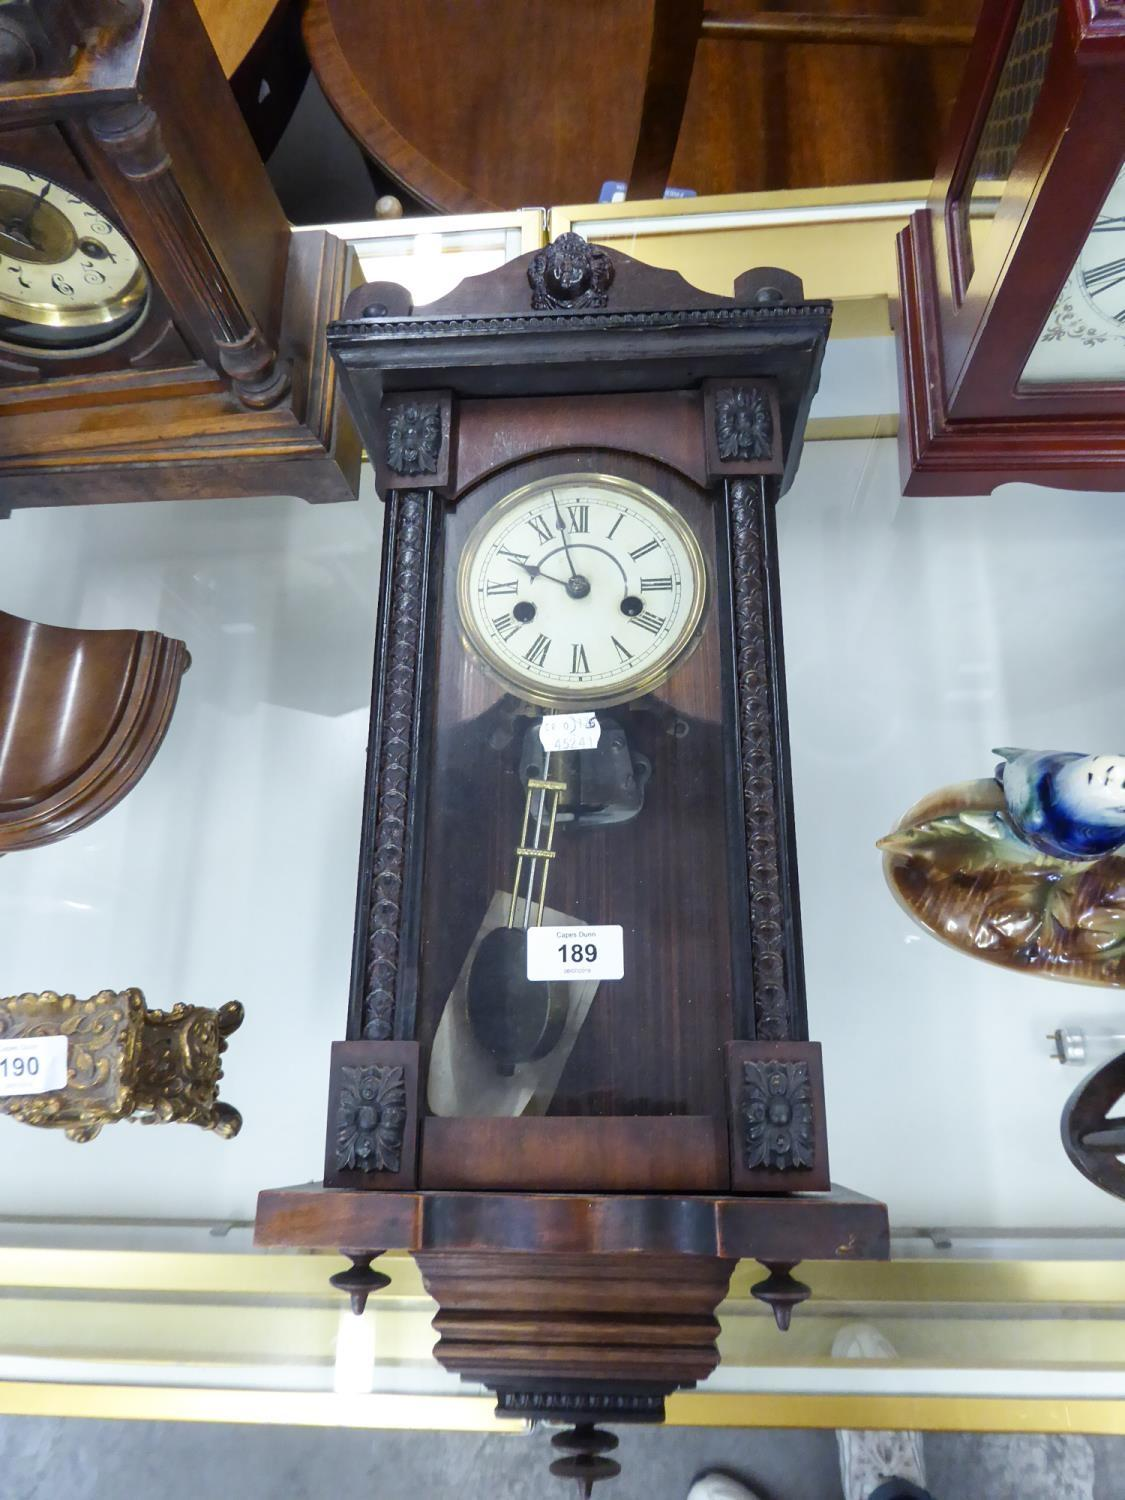 Lot 189 - EARLY 20th CENTURY SMALL WALL HANGING 'VIENNA' STYLE PENDULUM CLOCK WITH CYLINDER AND COMB MUSICAL